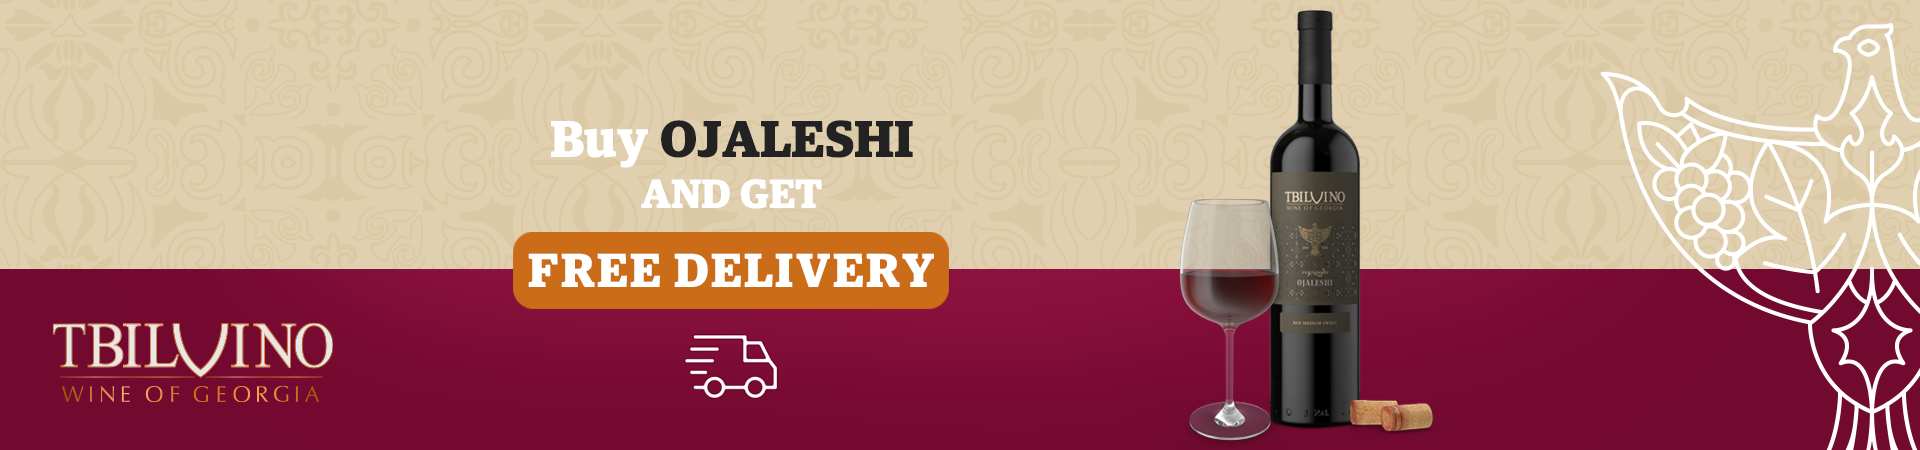 Ojaleshi-Free-Delivery-1920X450-ENG